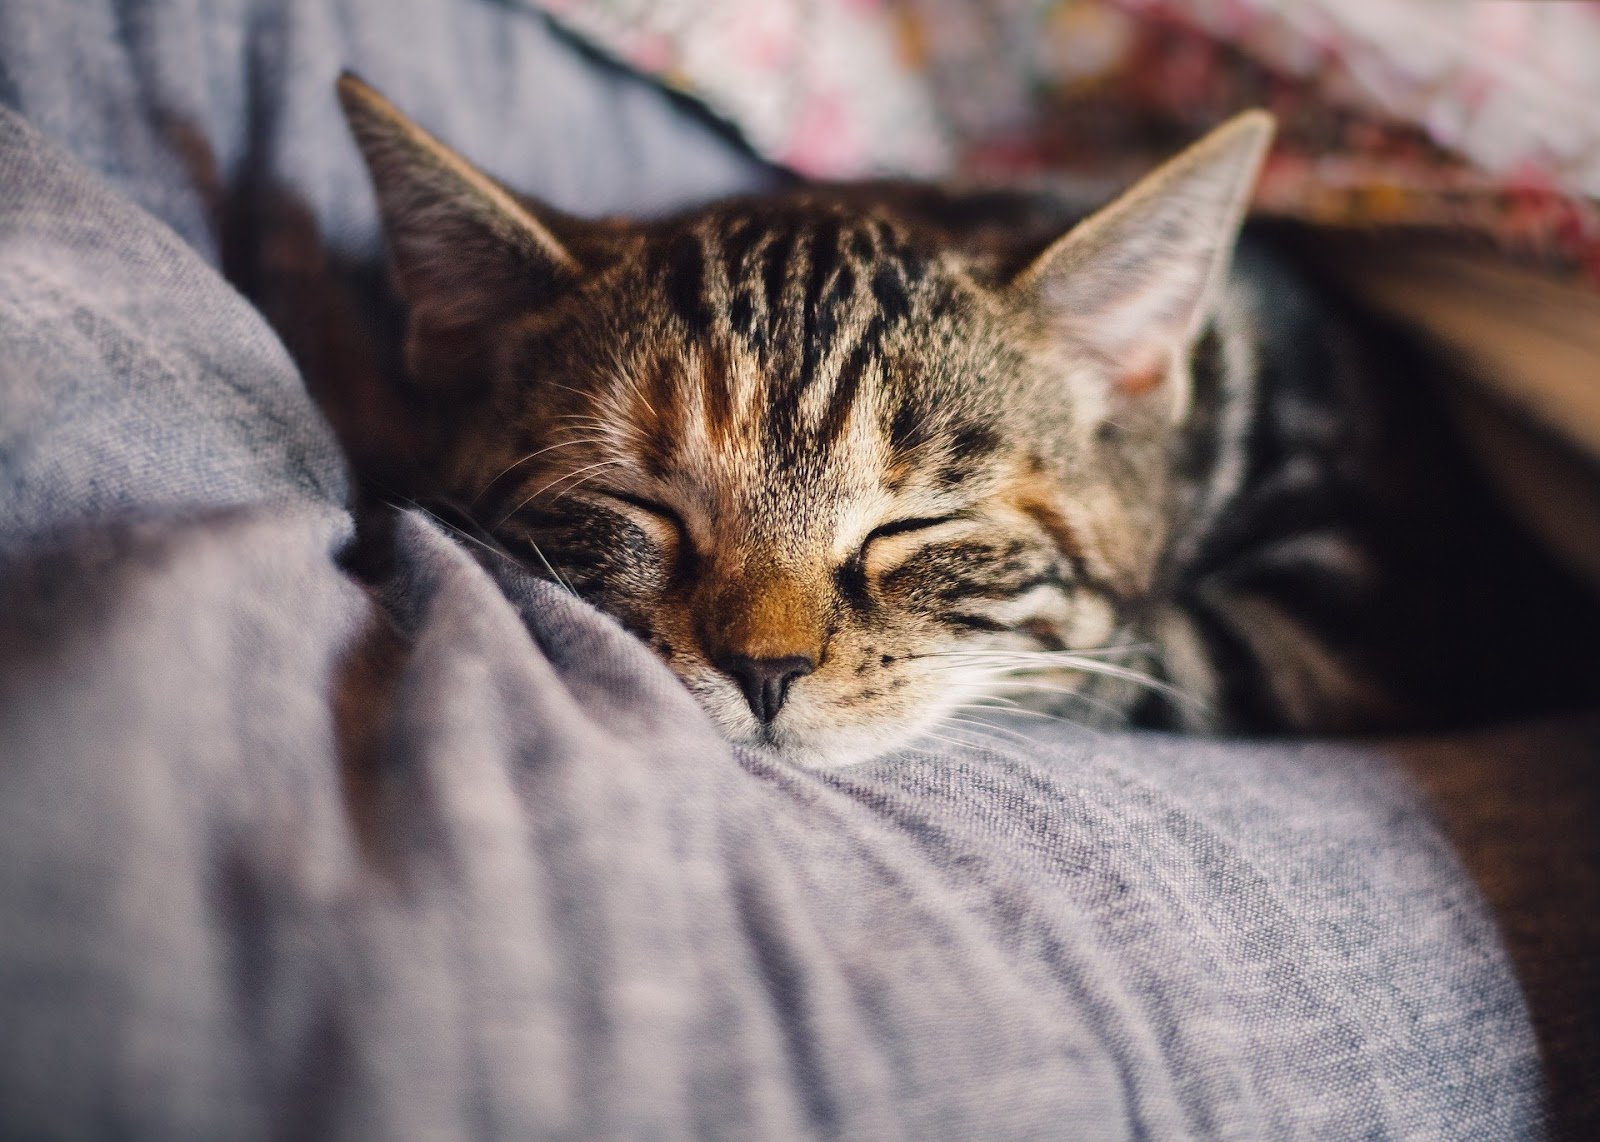 cat napping on pillow in comfy bed